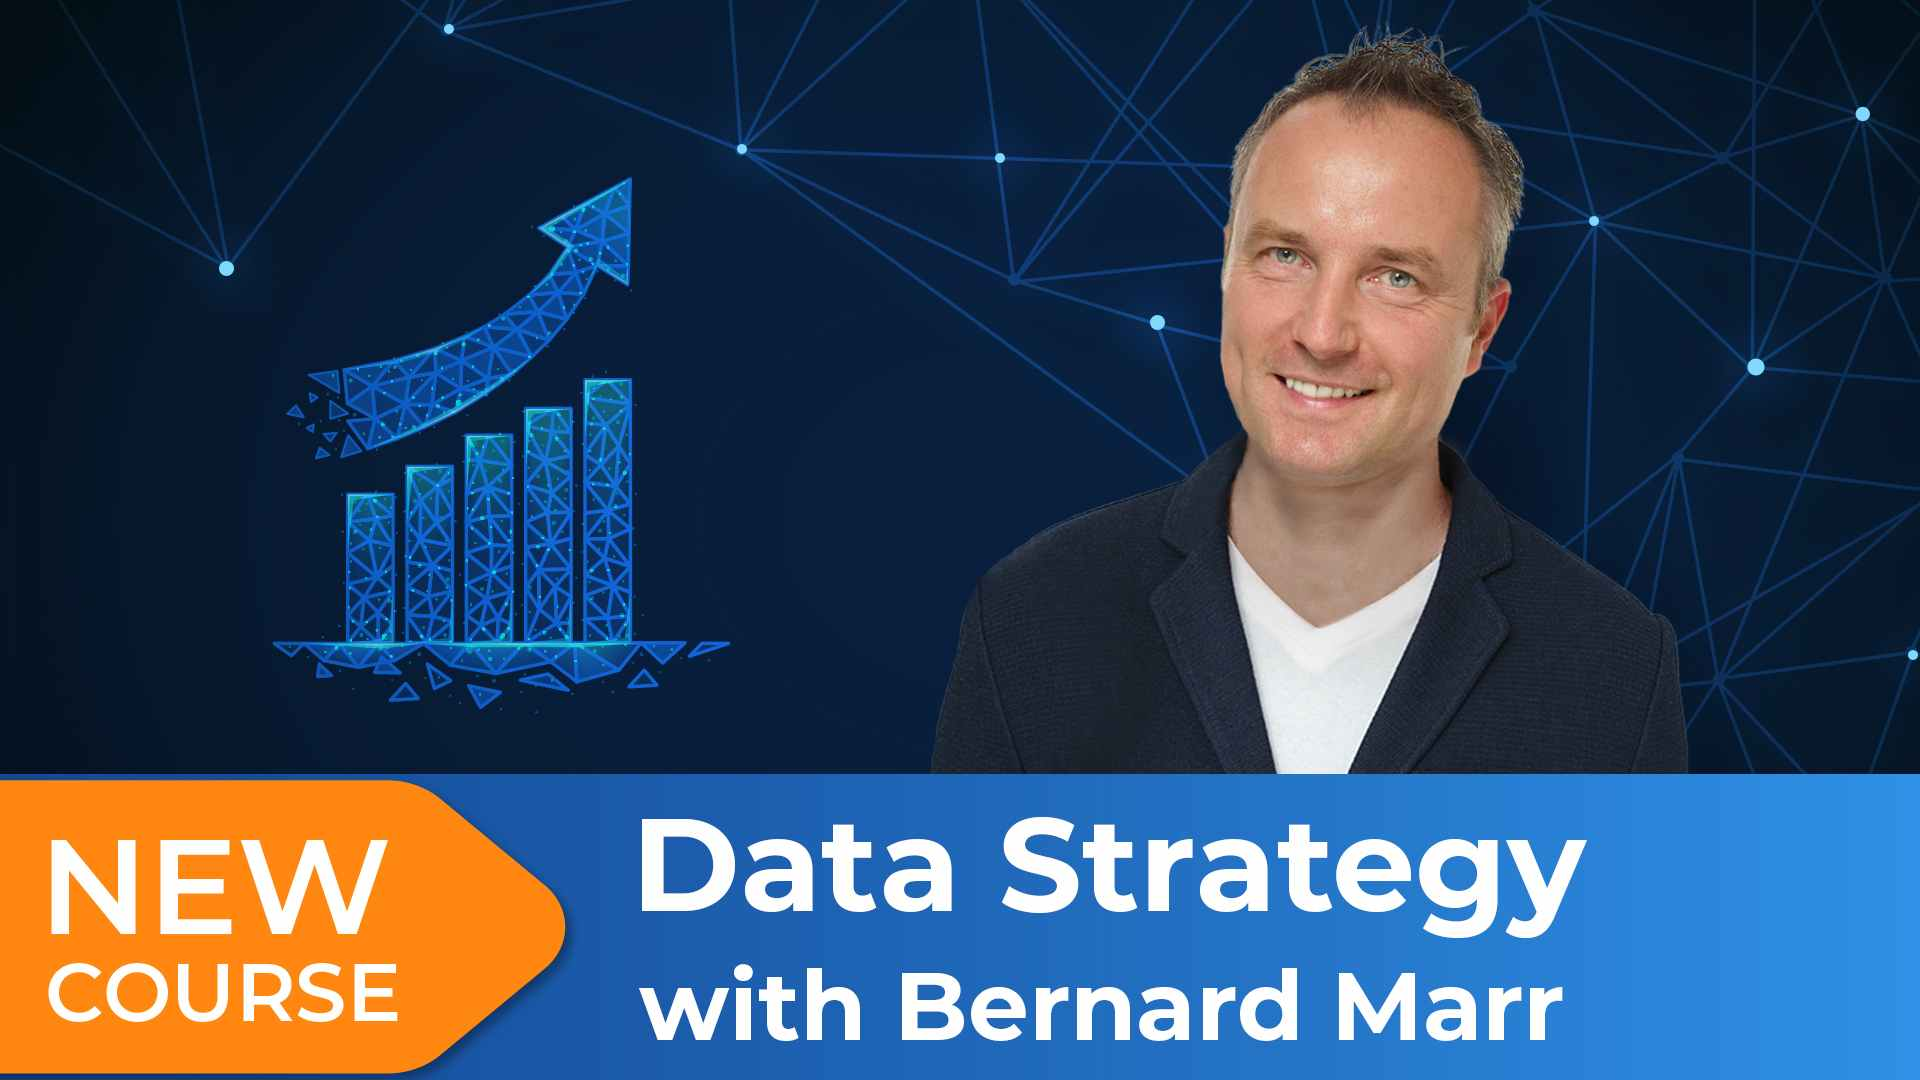 New Course! Data Strategy with Bernard Marr